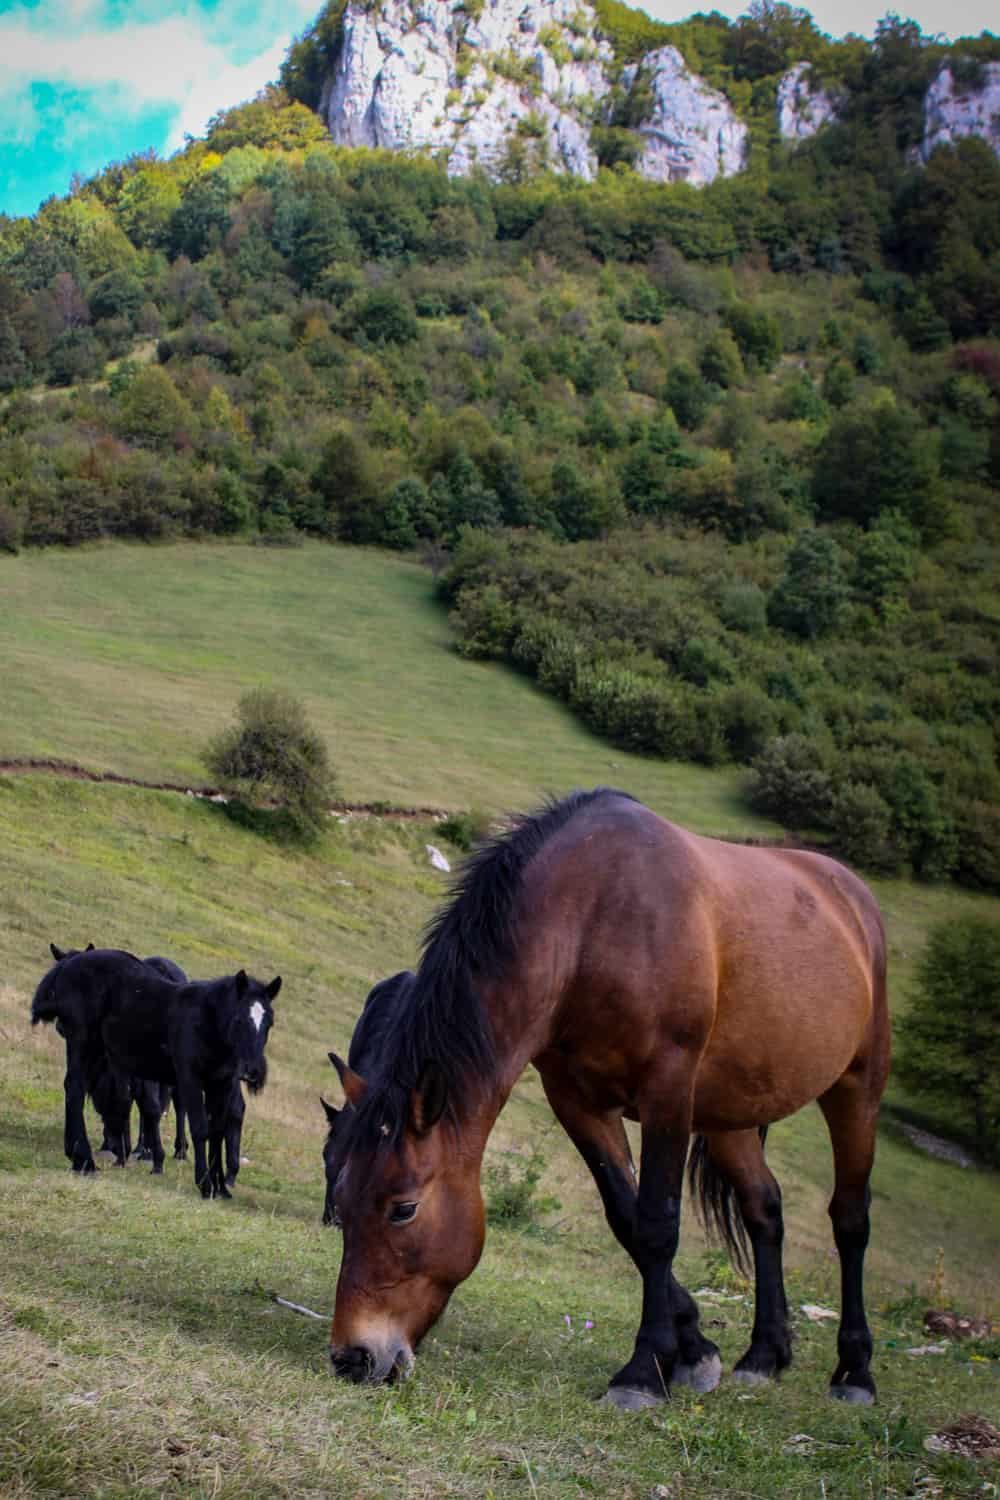 Advantages of the Purebred over the Grade horse